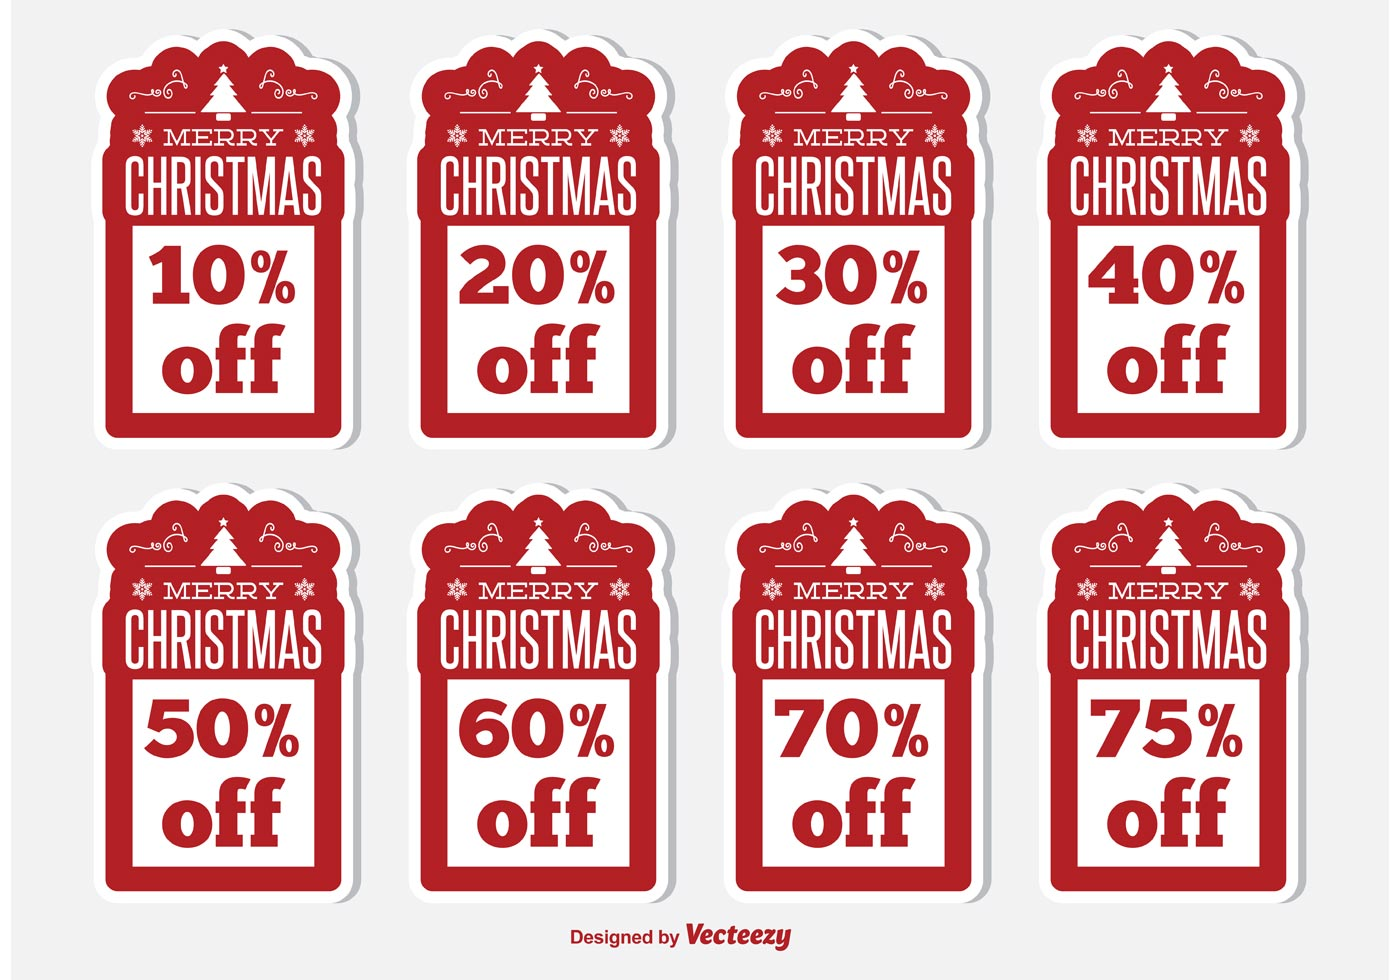 Christmas Sale: Discount Winter Holiday Decorations and Supplies. Shop our Christmas Sale now! Find a huge selection of Christmas party supplies, decorations, crafts and Christmas sale items. Enjoy low prices on top Christmas gift ideas, Christmas candy and more during our Christmas Sale - .